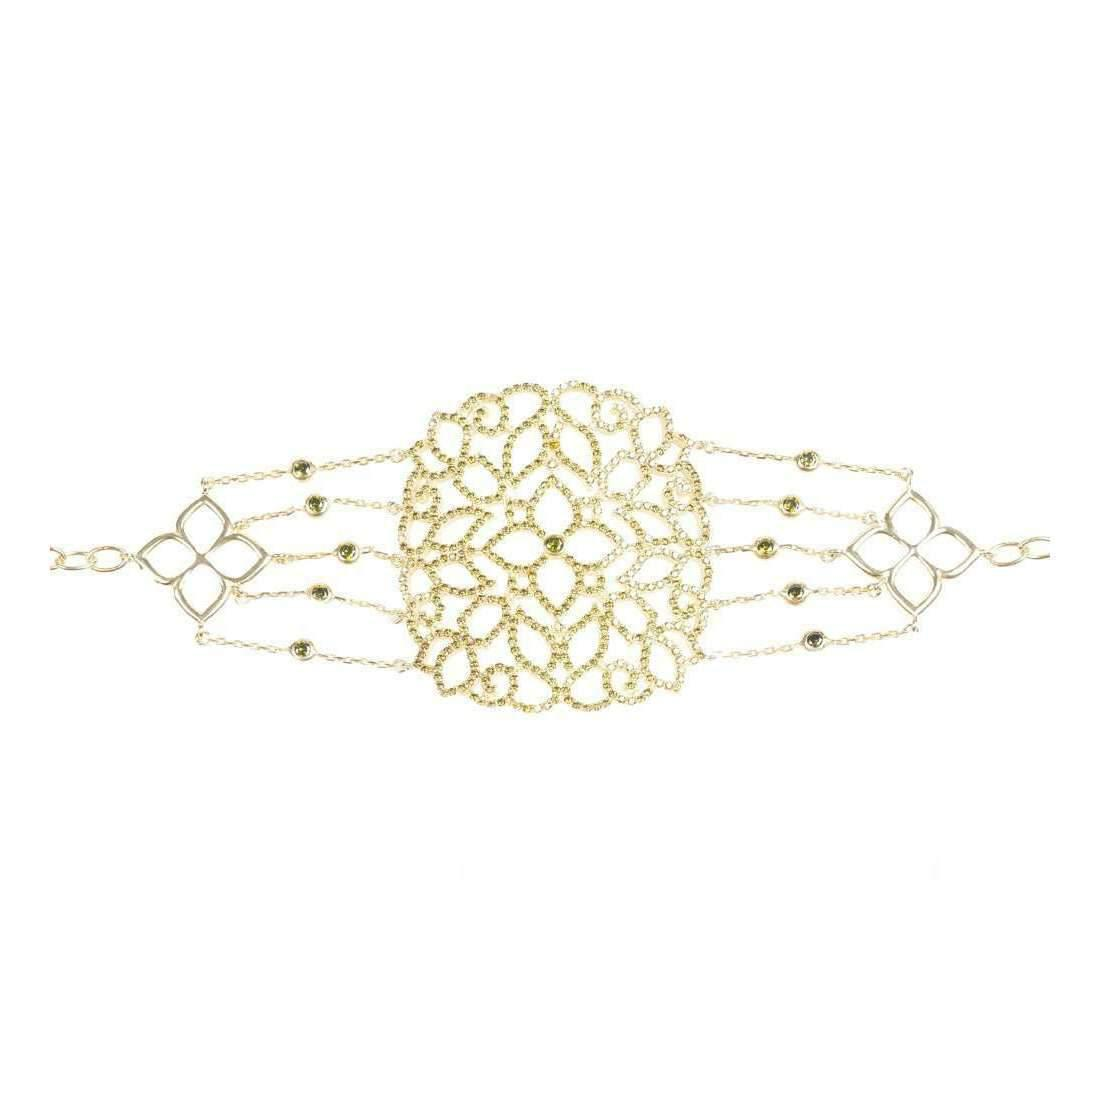 Latelita London 22kt Gold Vermeil Micro pave Filigree Bracelet Peridot